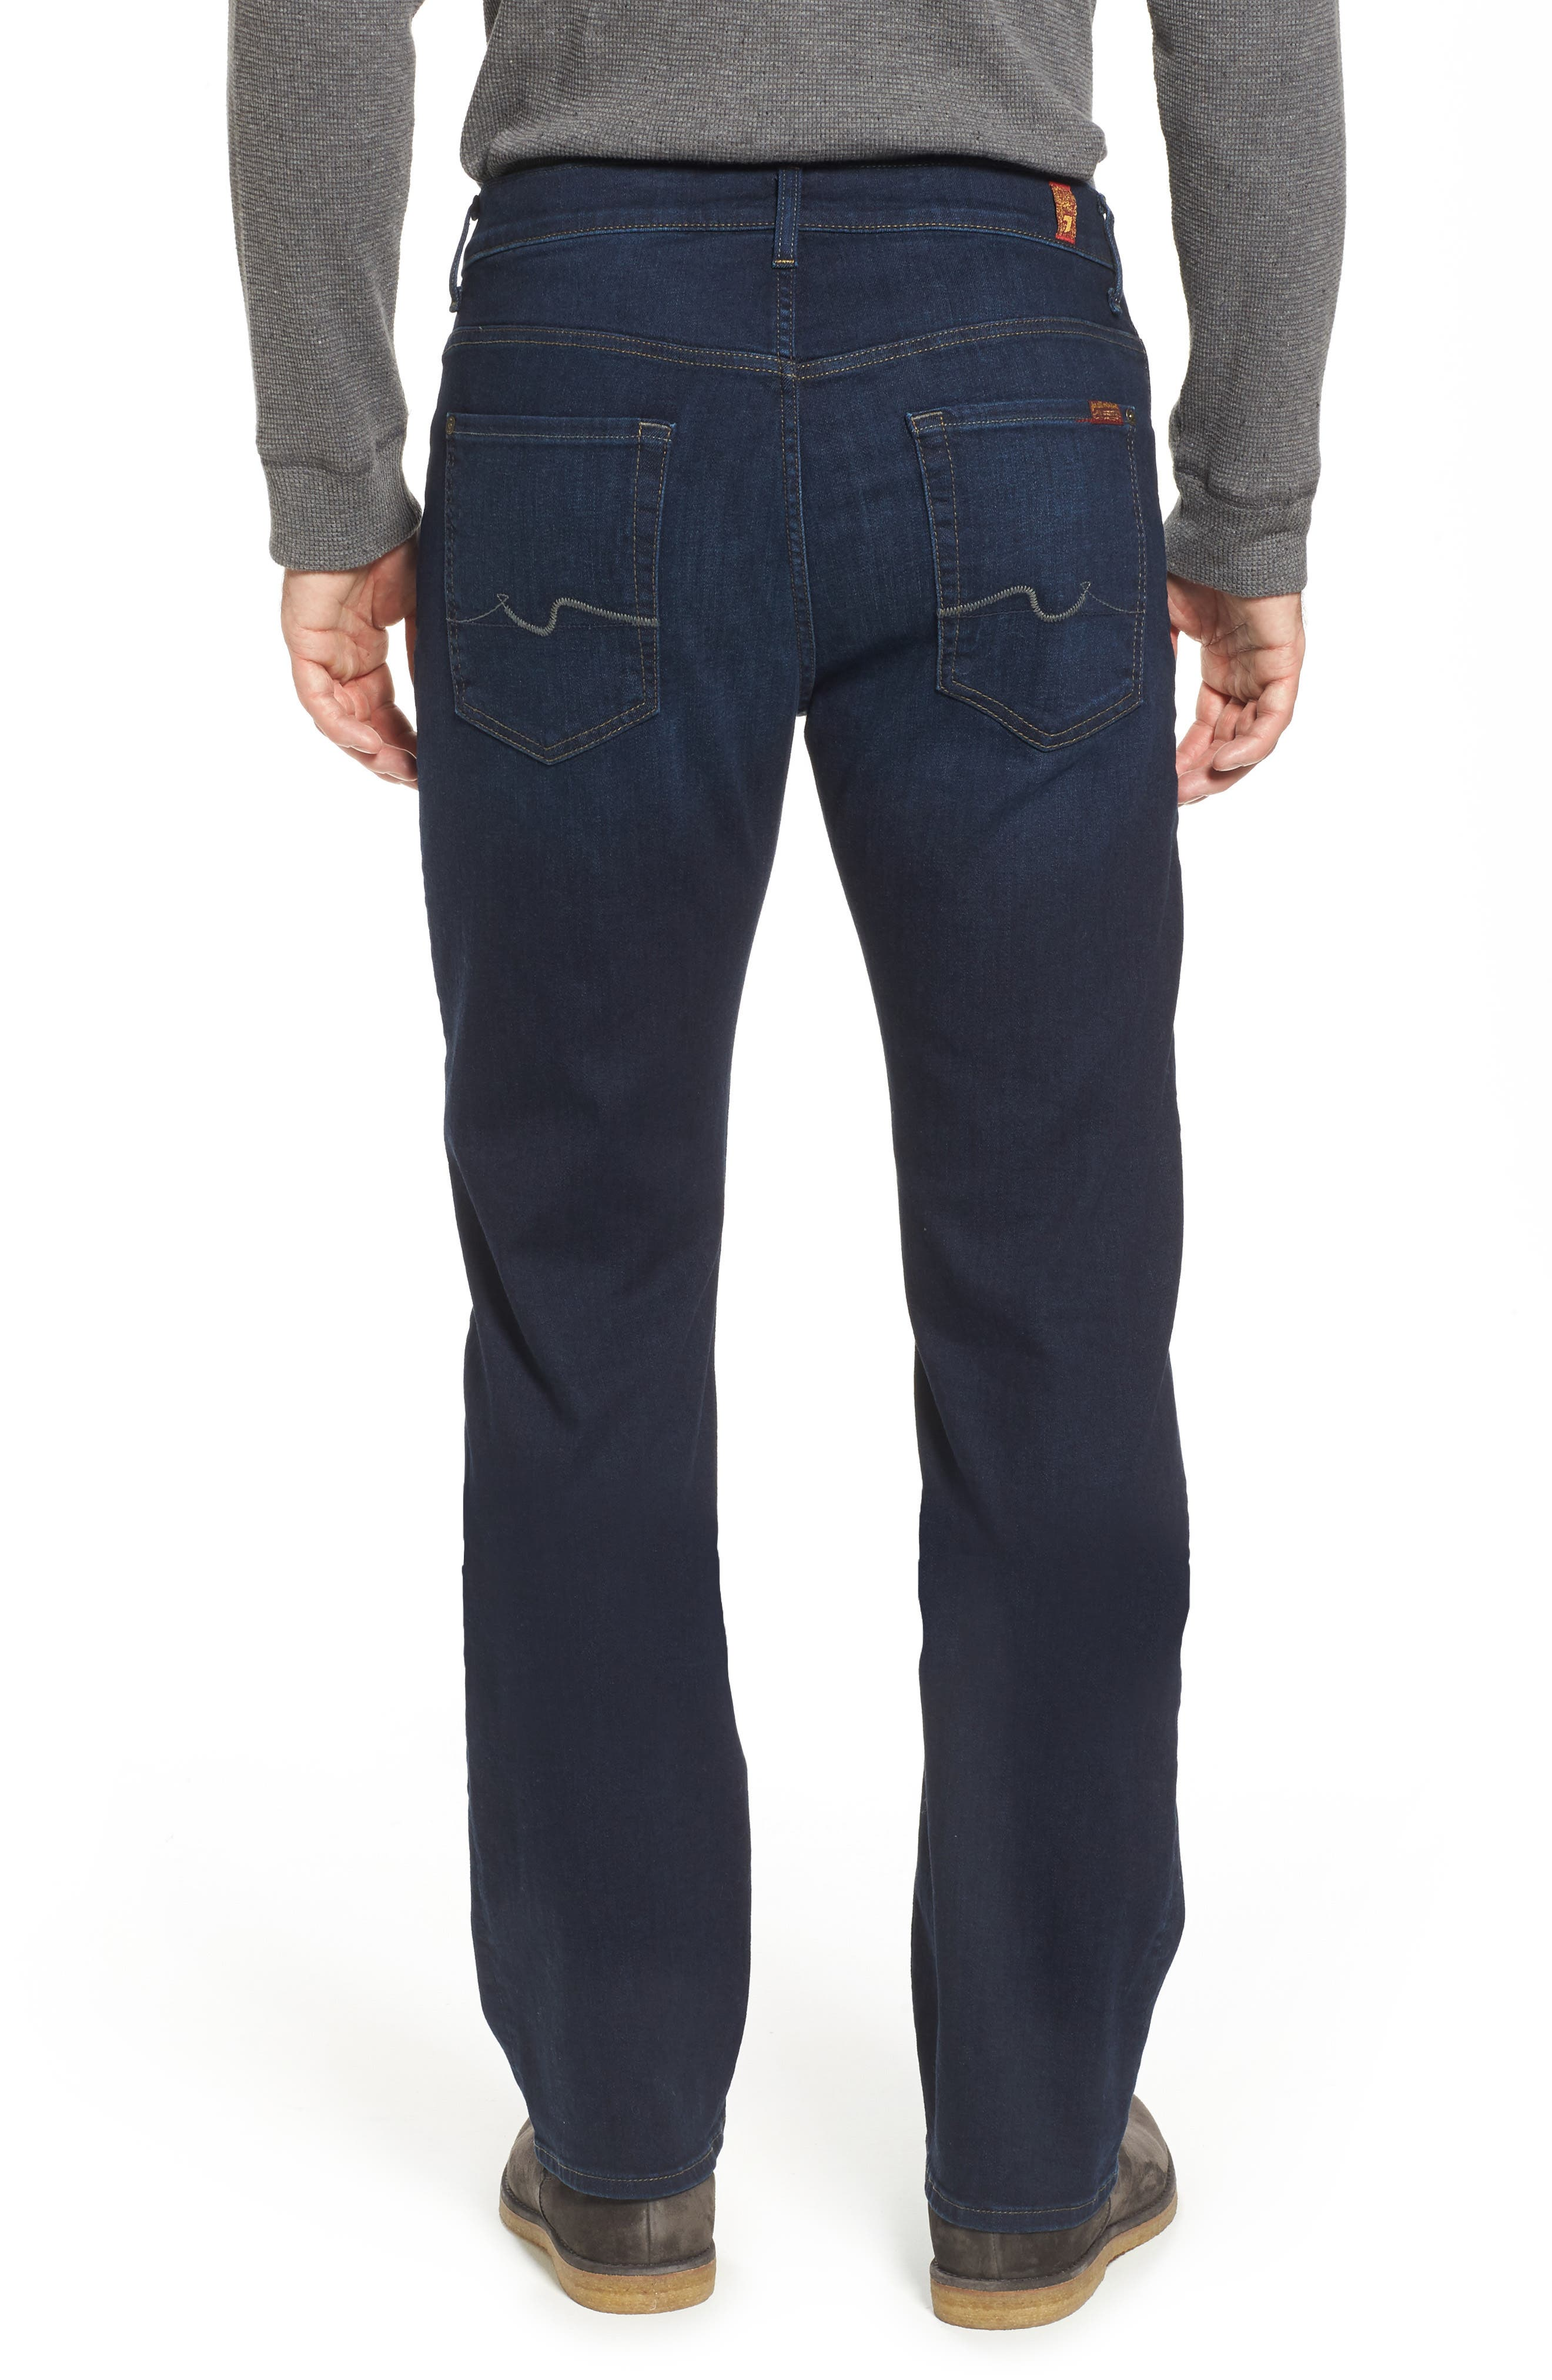 Austyn Relaxed Fit Jeans,                             Alternate thumbnail 2, color,                             401